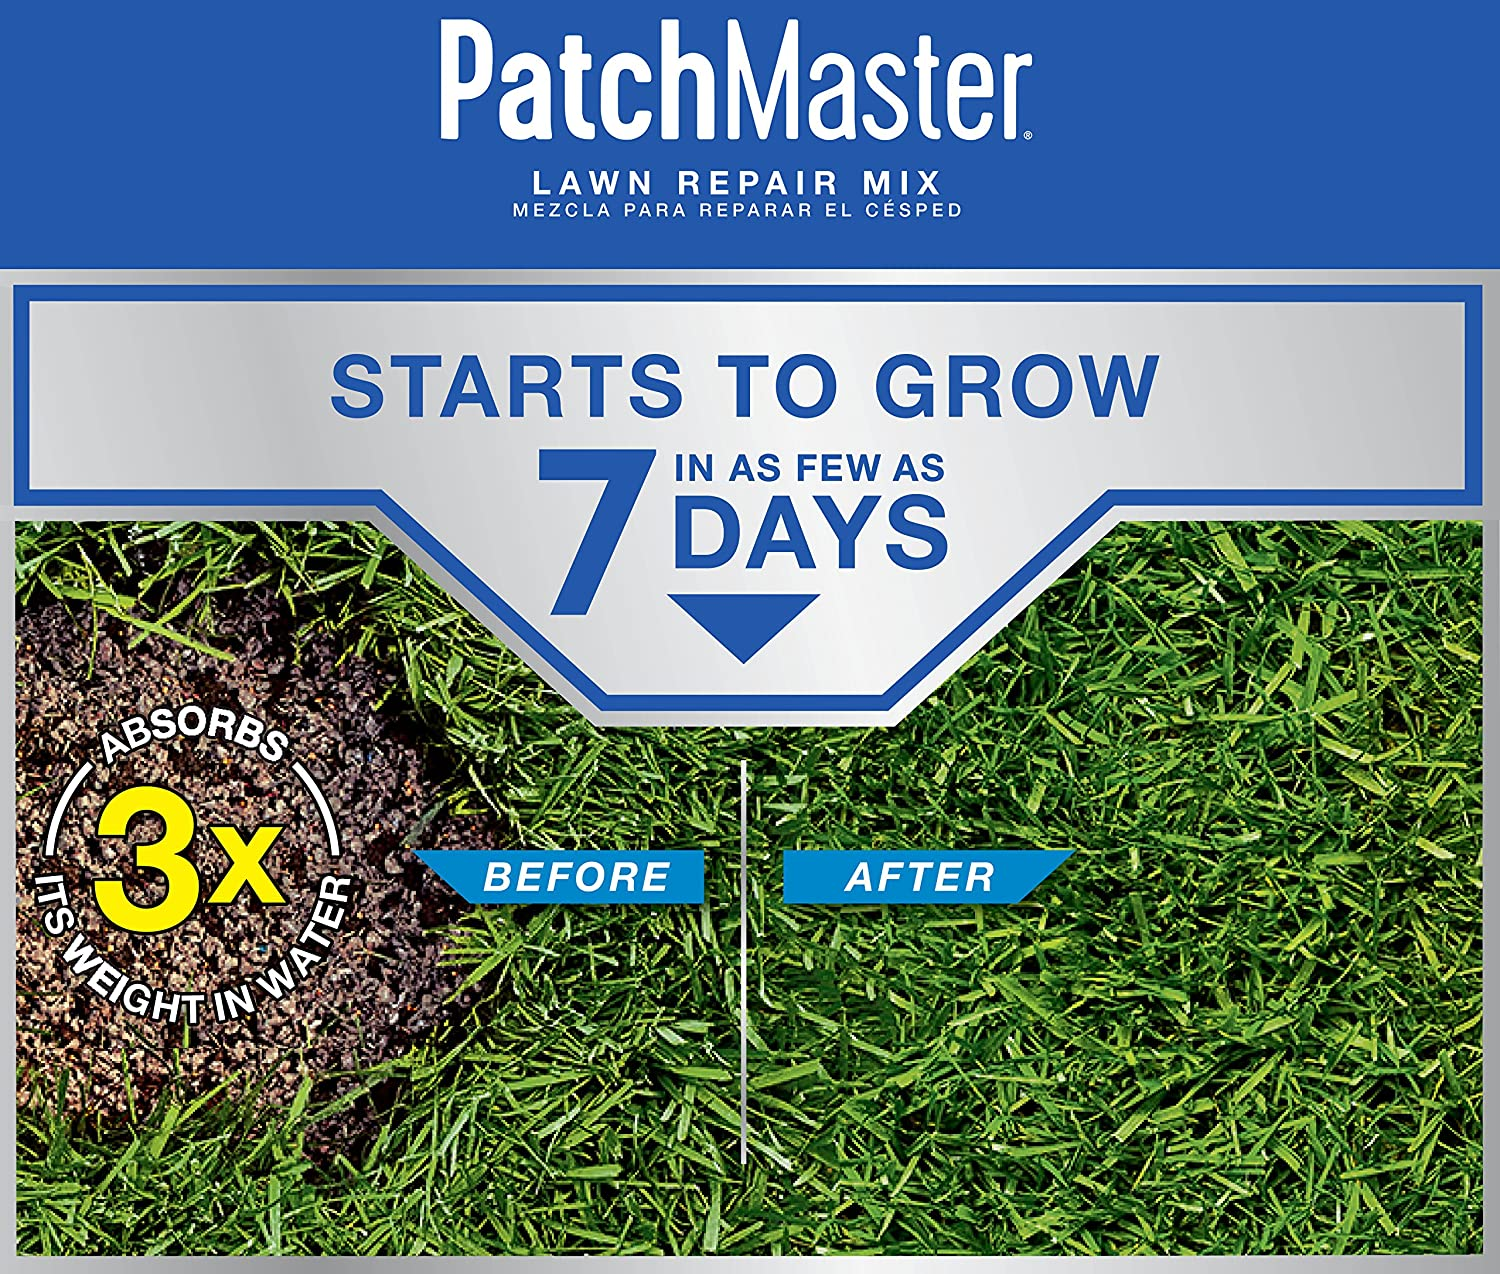 Scotts PatchMaster Lawn Repair Mix Sun and Shade Mix - 10 lb, All-in-One Bare Spot Repair, Feeds for Up to 6 Weeks, Fast Growth and Thick Results, Covers Up to 290 sq. ft.: Garden & Outdoor